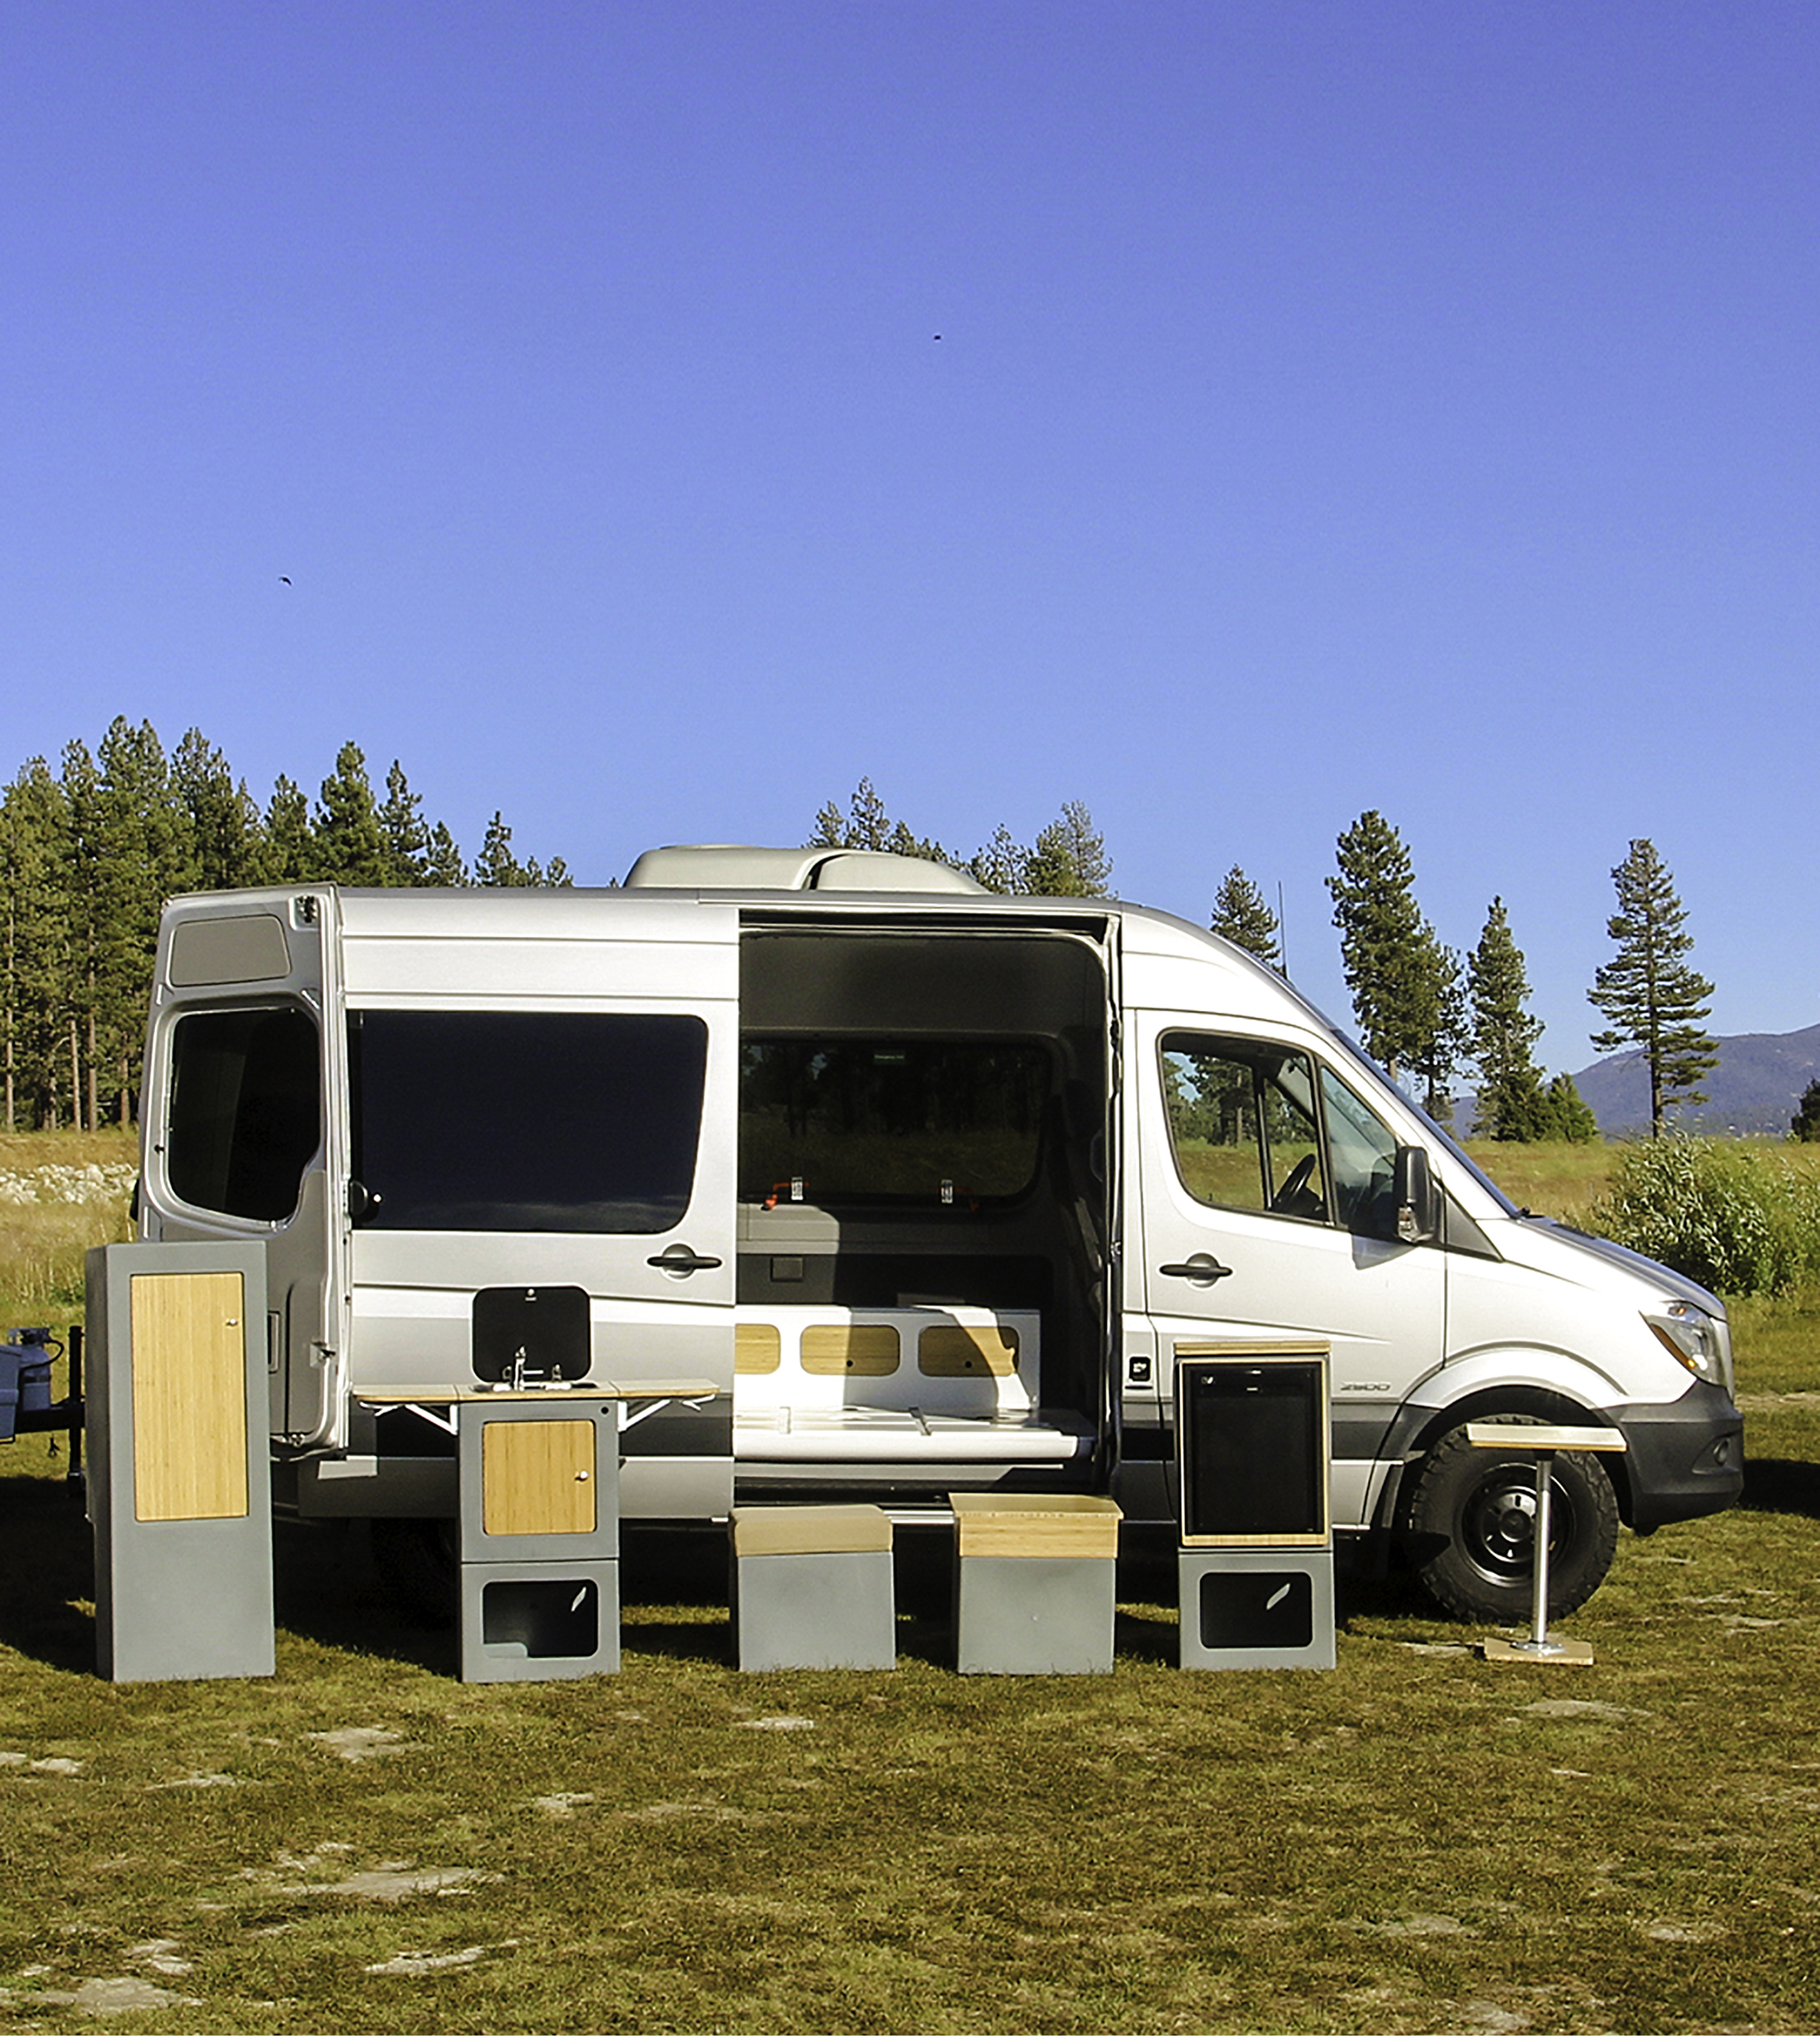 Lego-like camper van conversion kits let you build the RV of your dreams